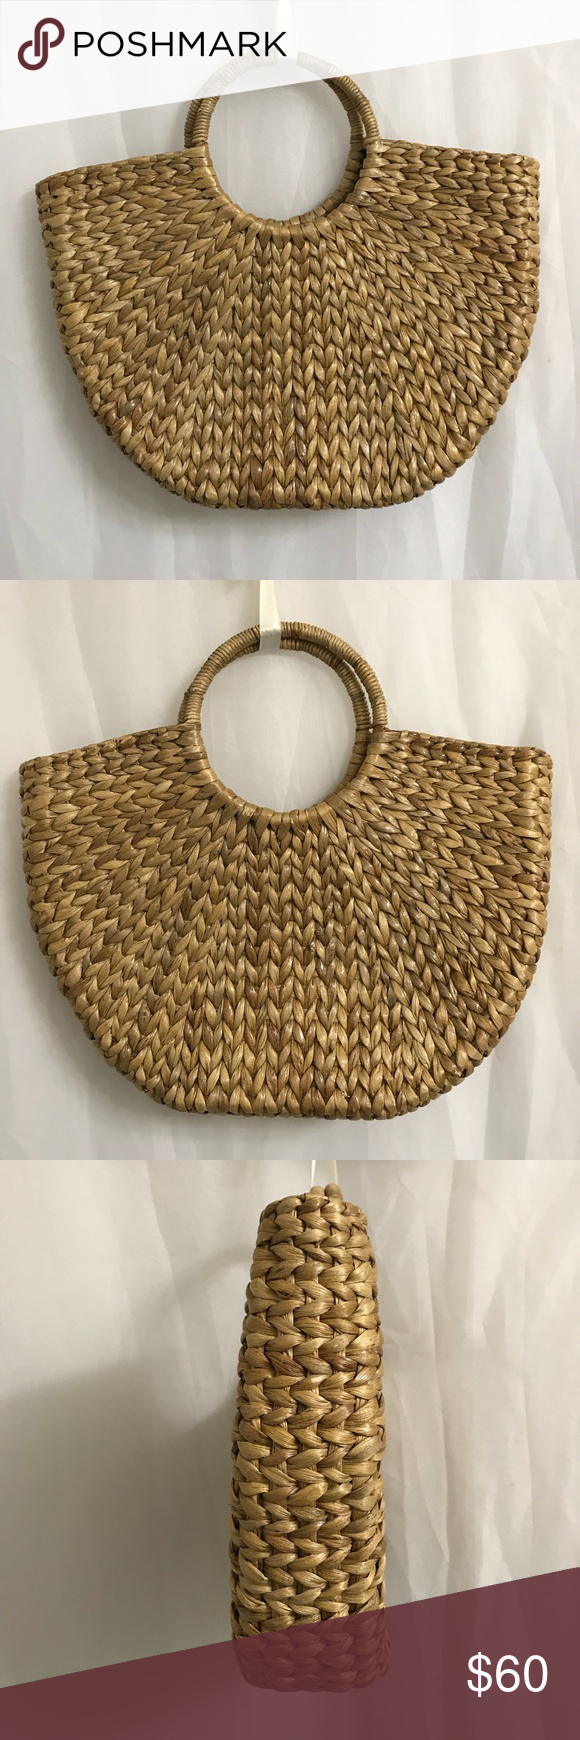 Putu By J Maclear Woven Straw Lydia Bag Putu By J Maclear Bag Made Of Straw Handwoven In Bali In The Lydia Style With Rattan Hand Bags Woven Clothes Design